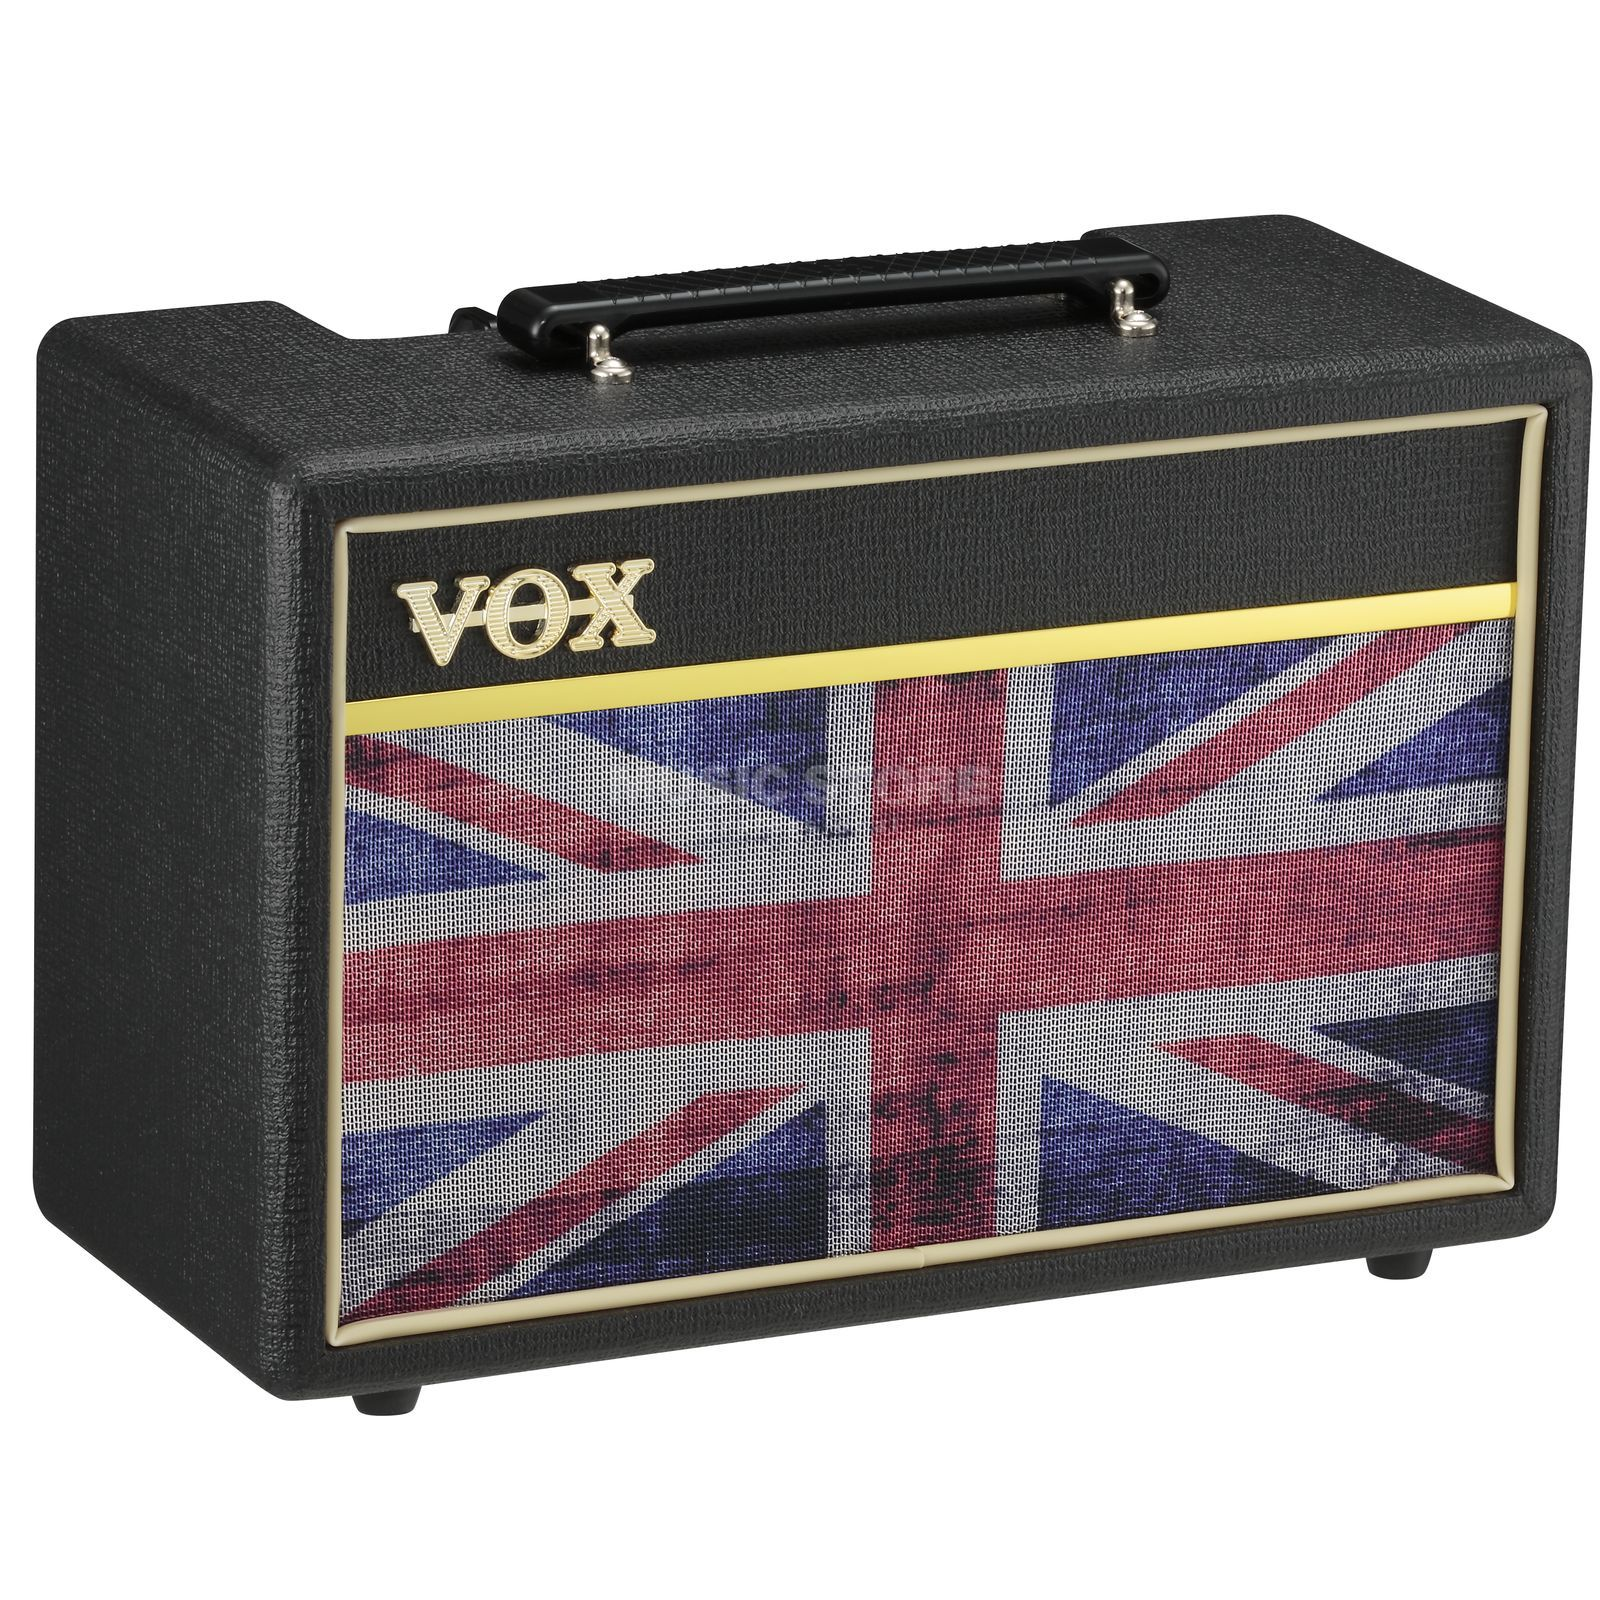 VOX Pathfinder 10 Union Jack Black Limited Edition Product Image